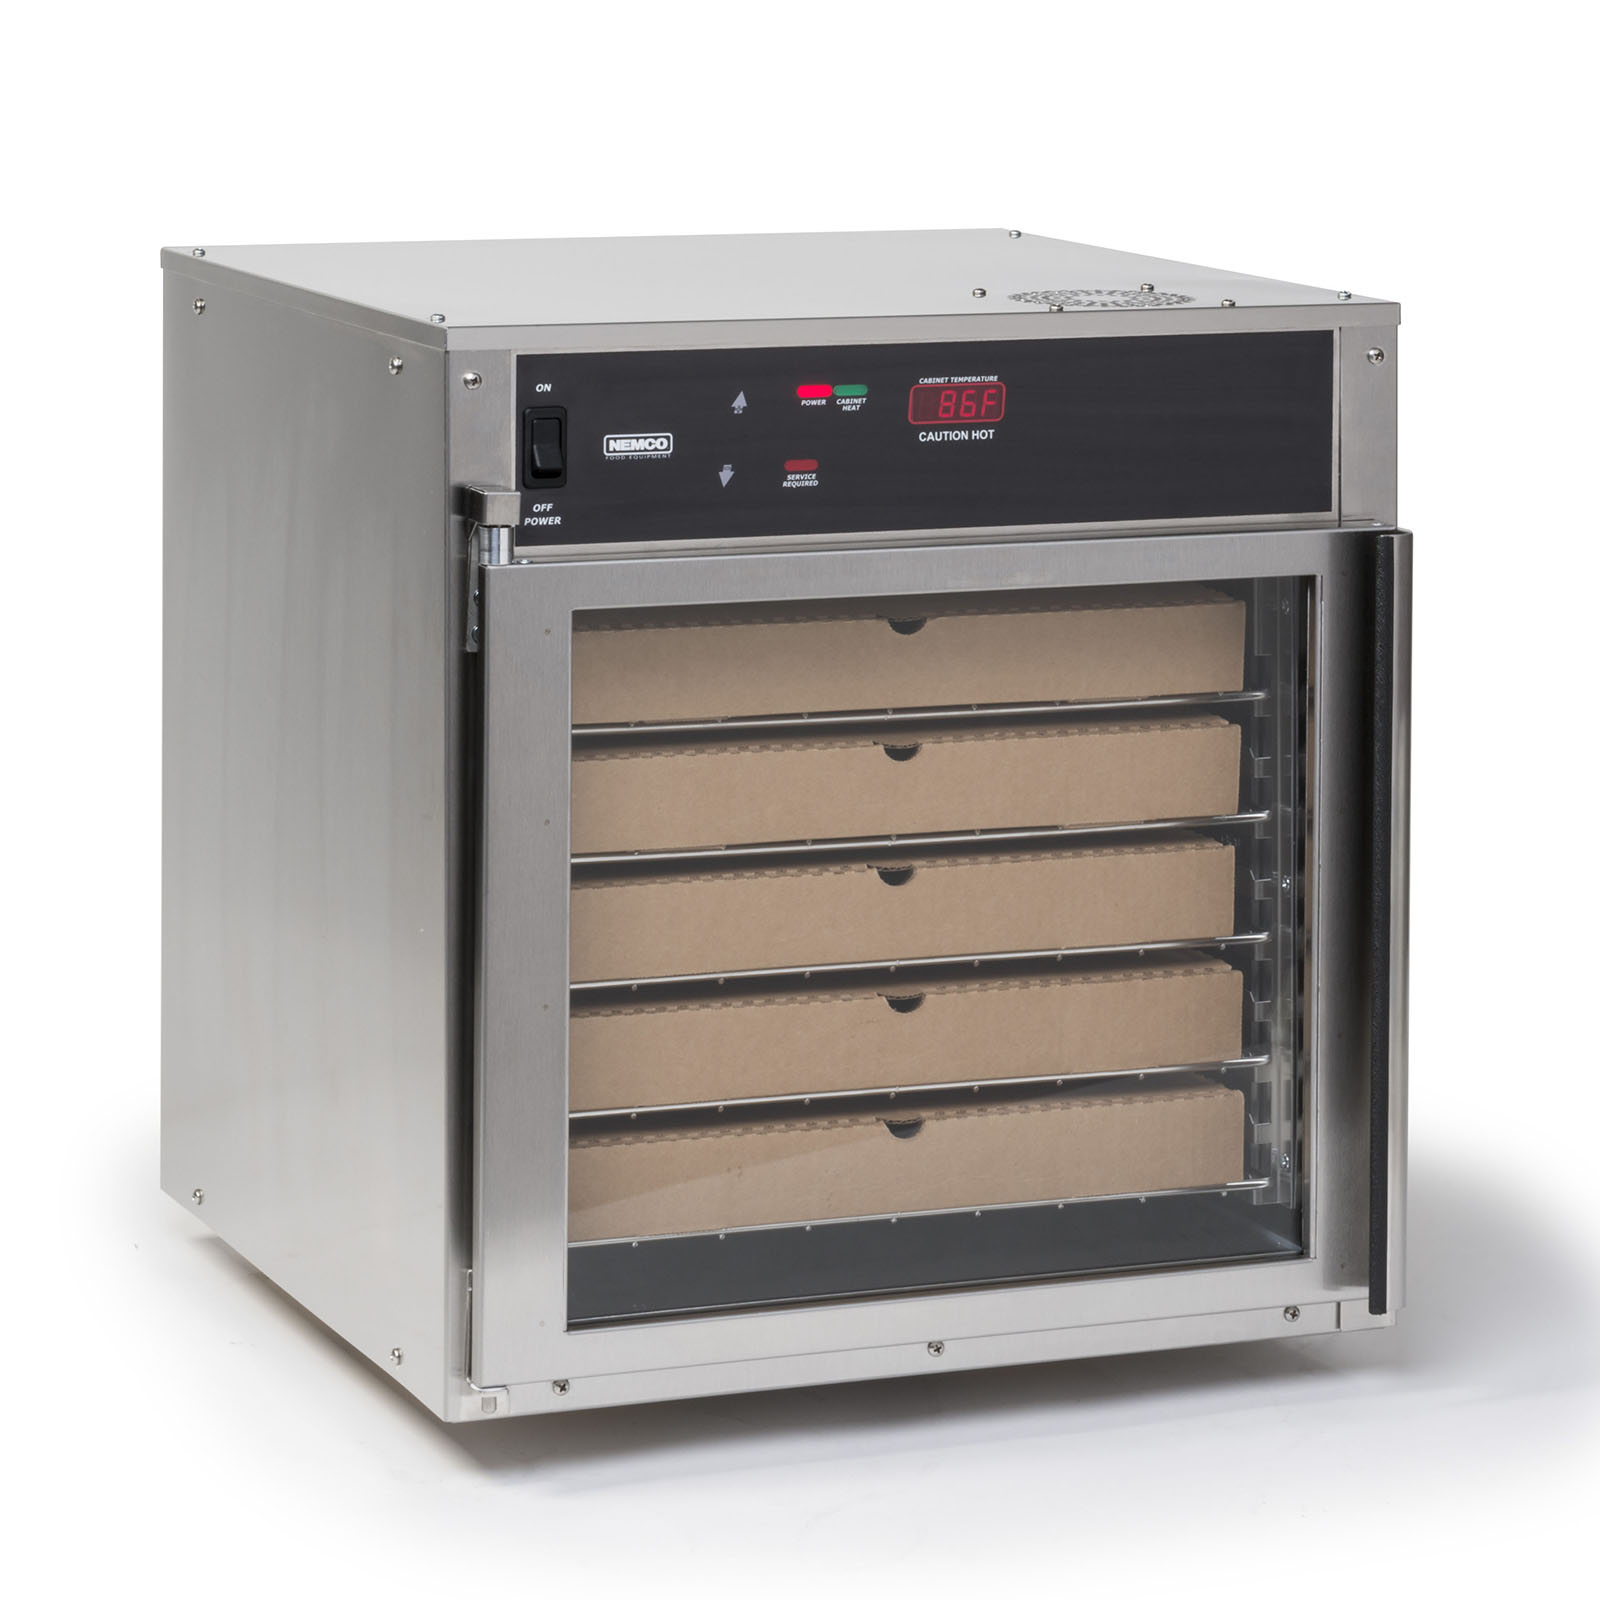 Nemco Food Equipment 6405 heated cabinet, countertop